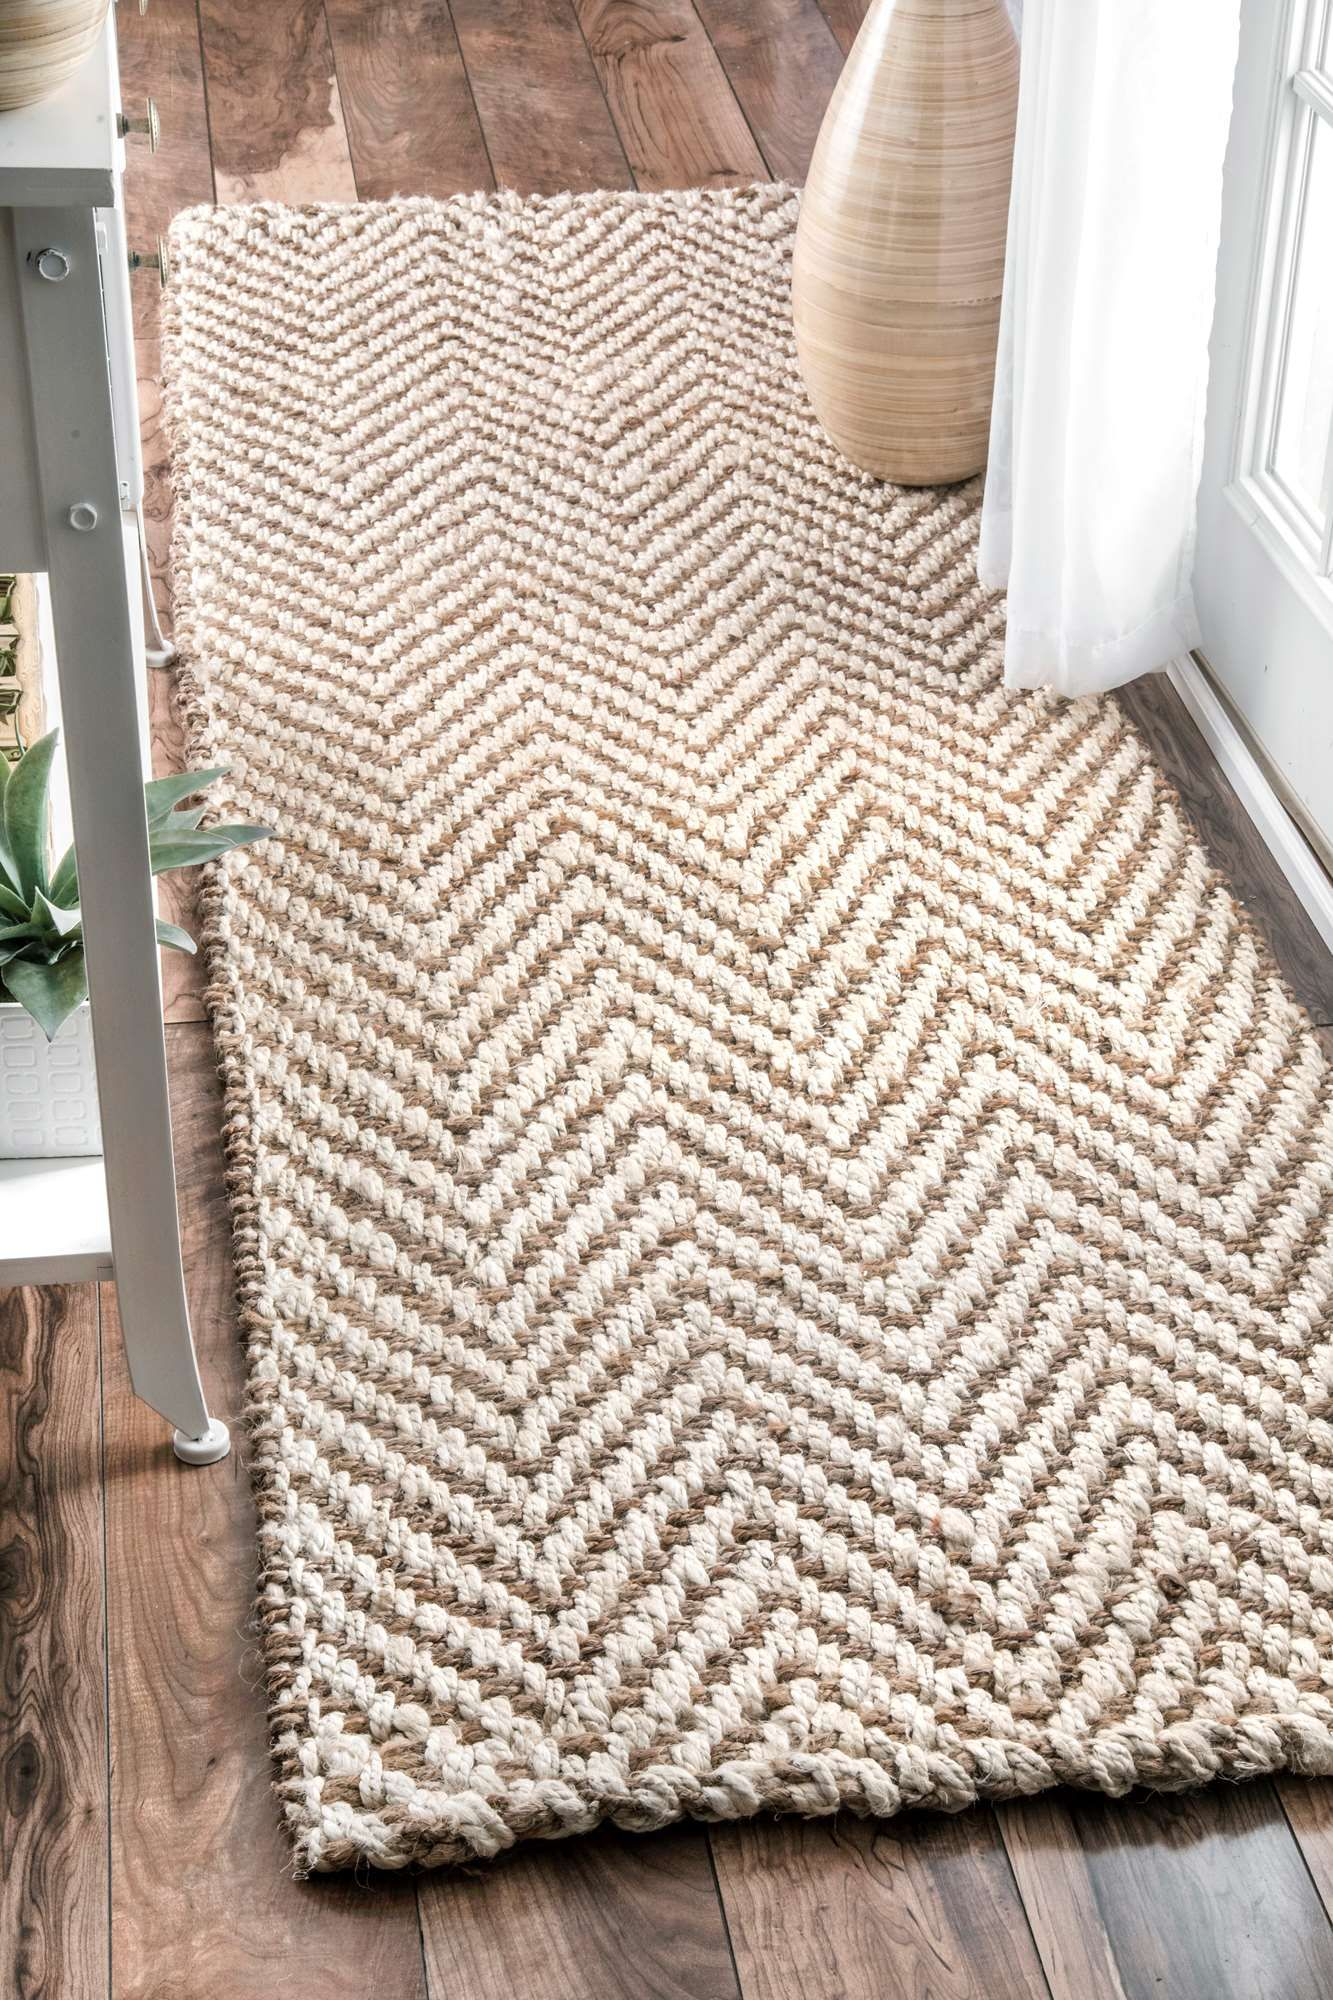 Get The Earthy Rustic Look With Amazingly Striped Patterned Handwoven And 100 Percent Natural Fiber Jute Rug Is Thick Perfect For Any Indoor